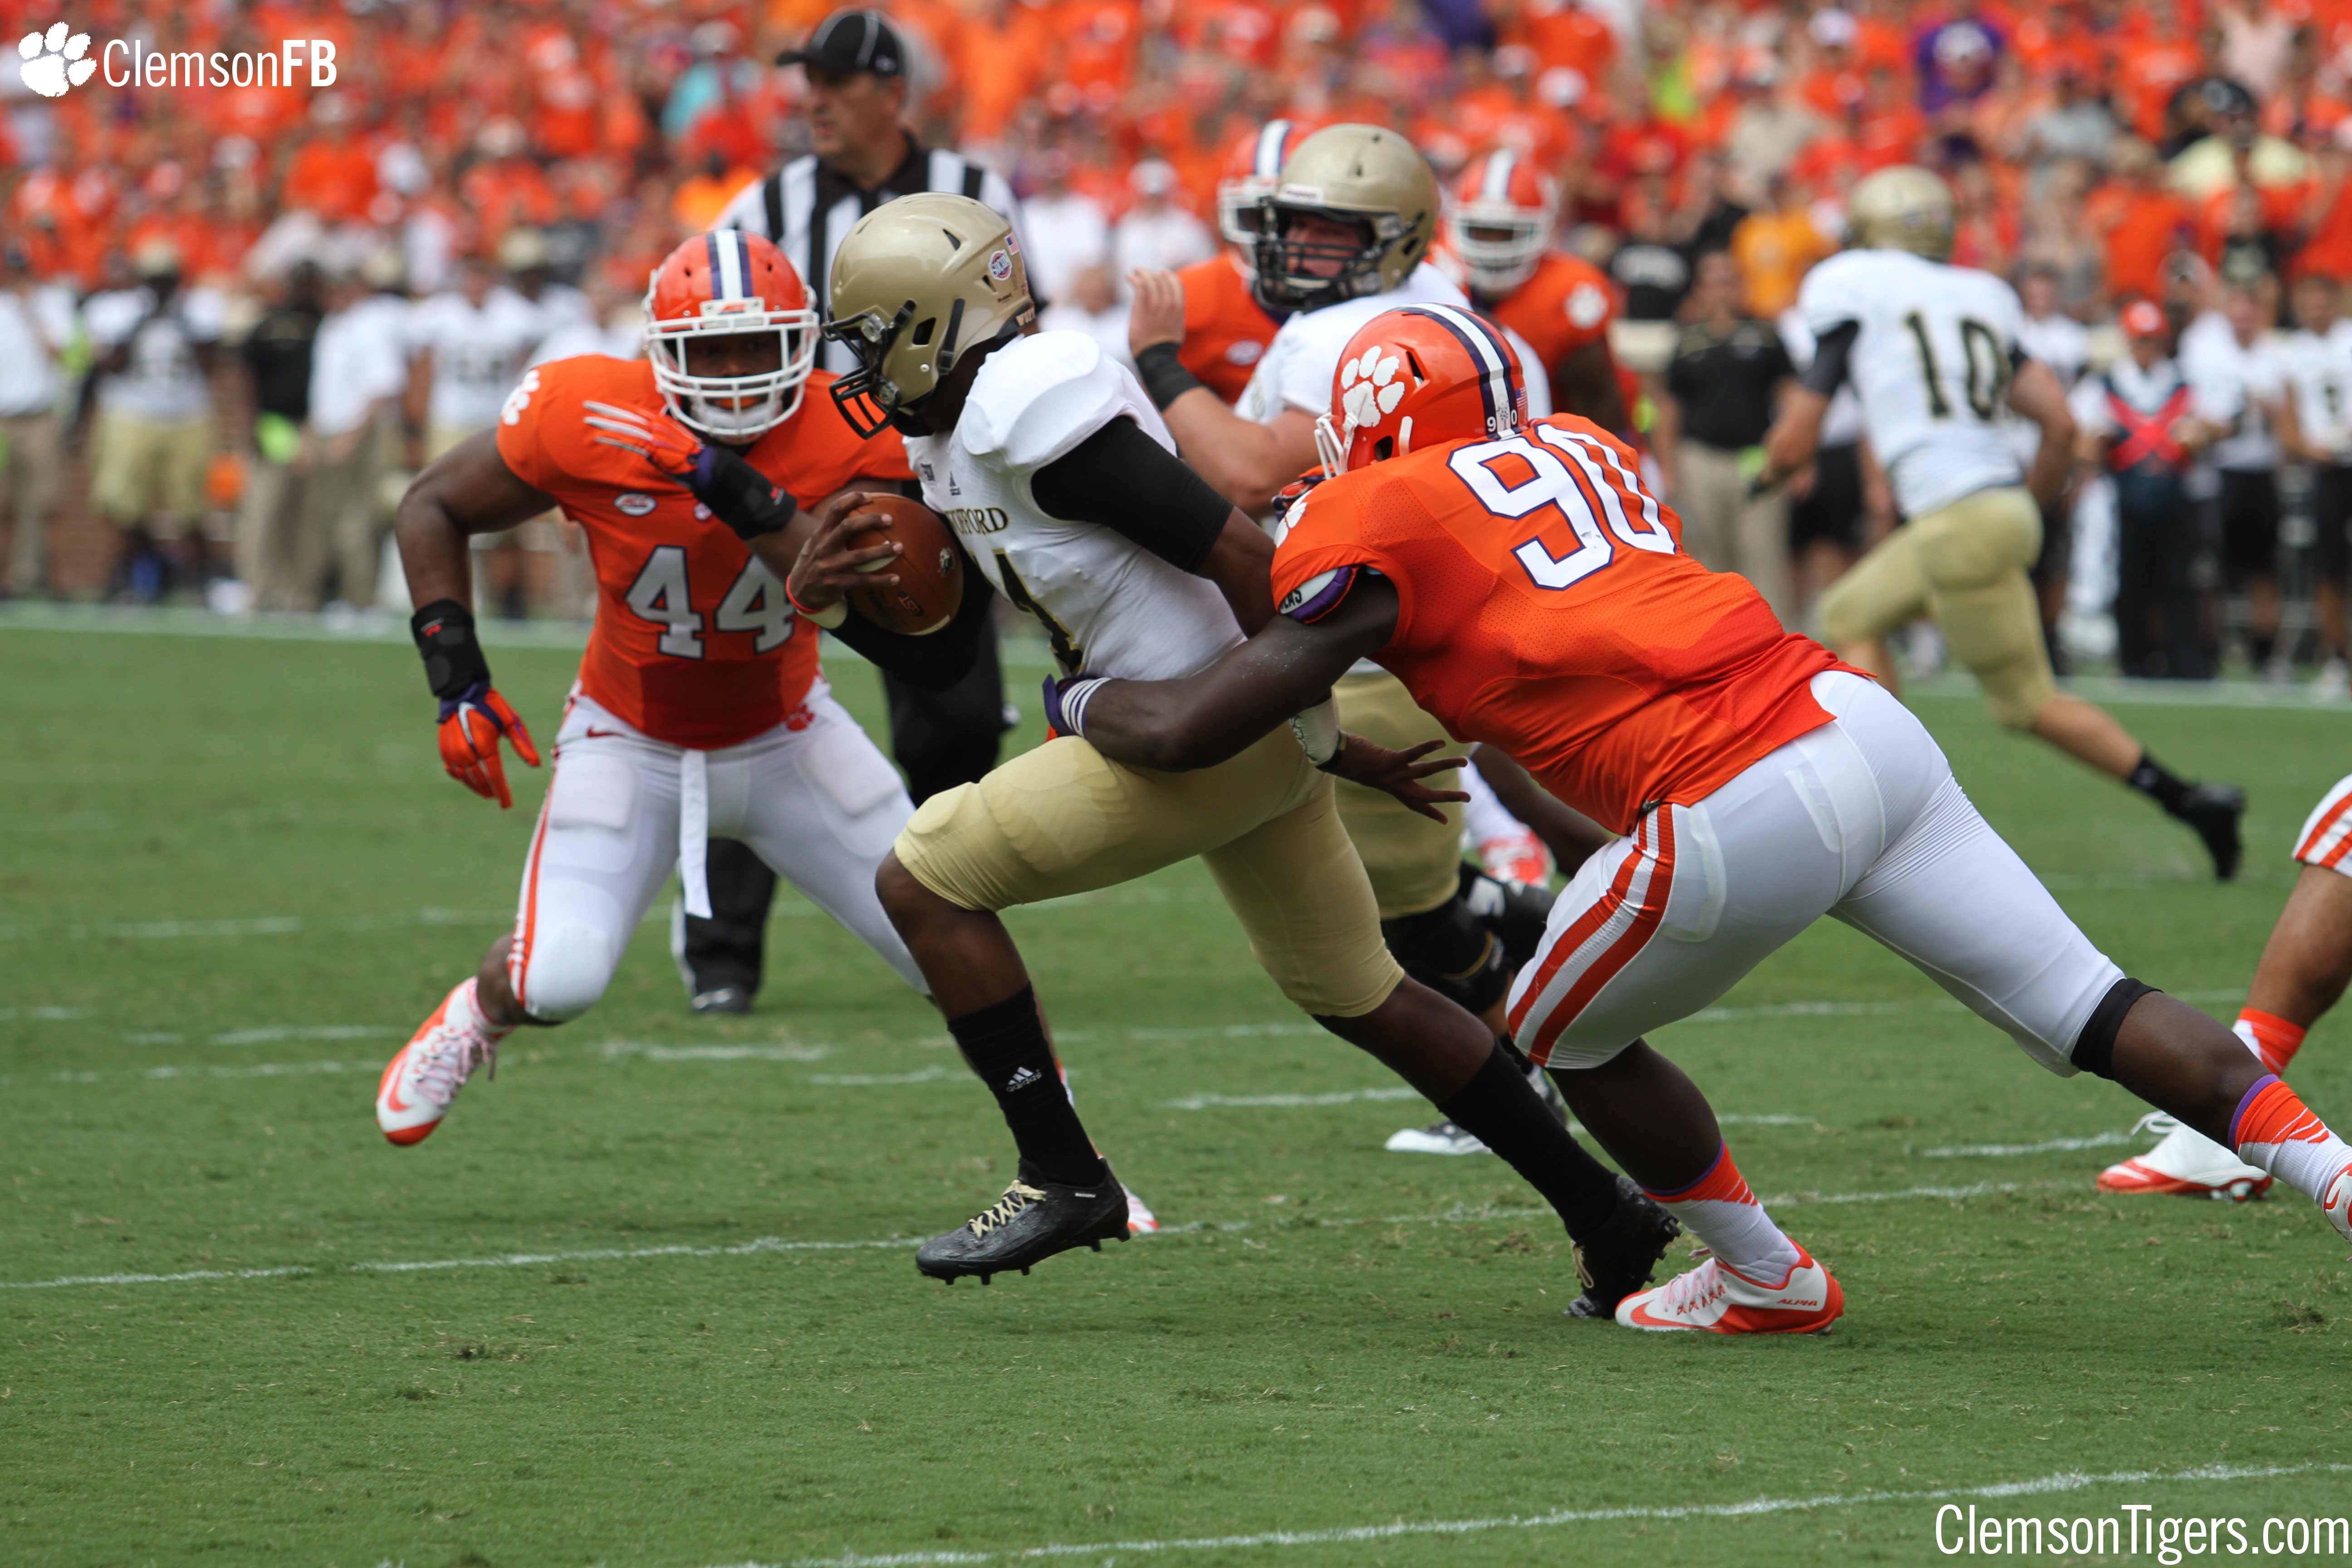 Clemson Vs Wofford 9 5 15 Clemson Tigers Official